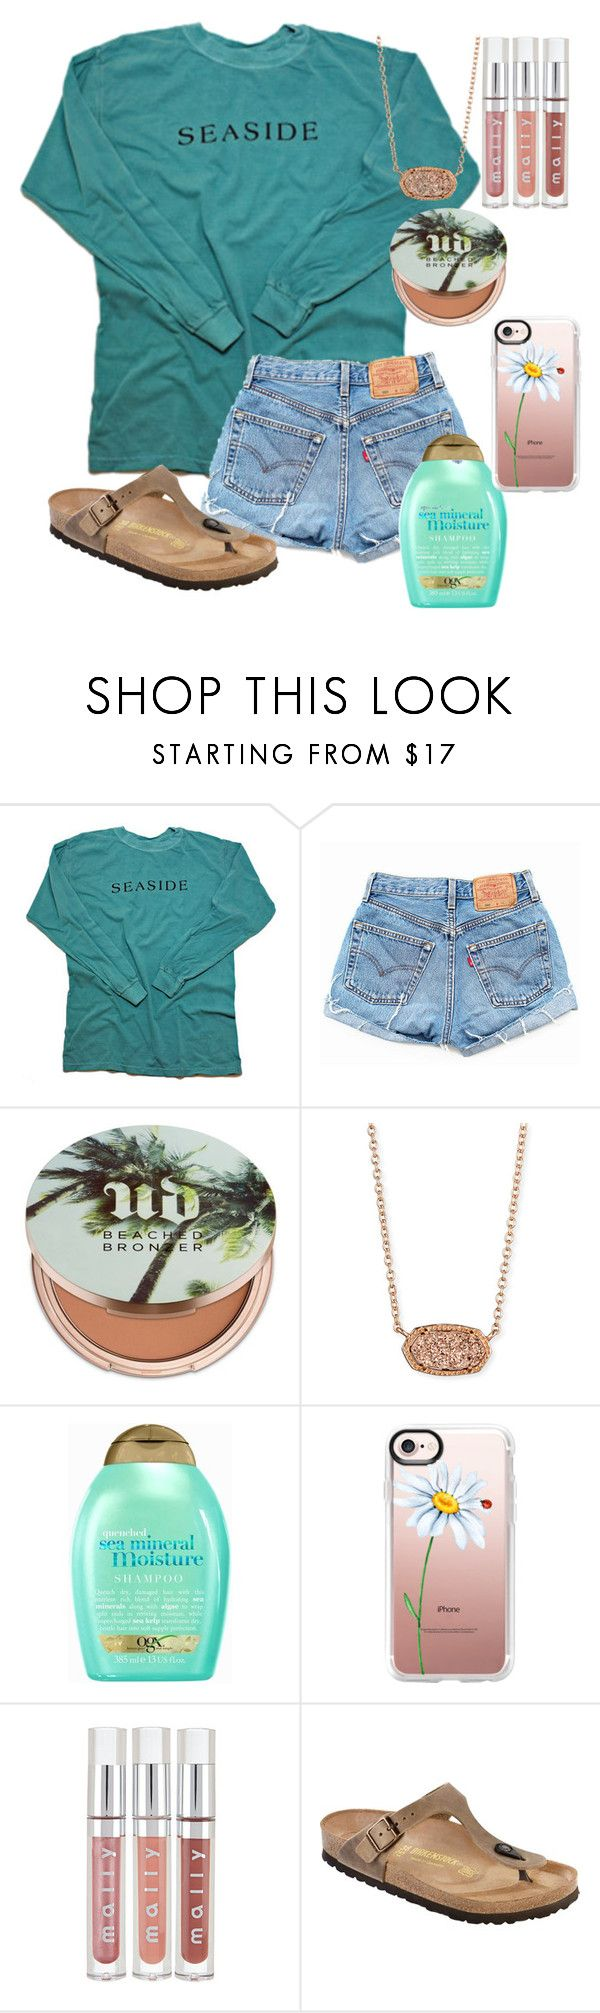 """"""""""" by exobeckb ❤ liked on Polyvore featuring Levi's, Urban Decay, Kendra Scott, Organix, Casetify and Birkenstock"""